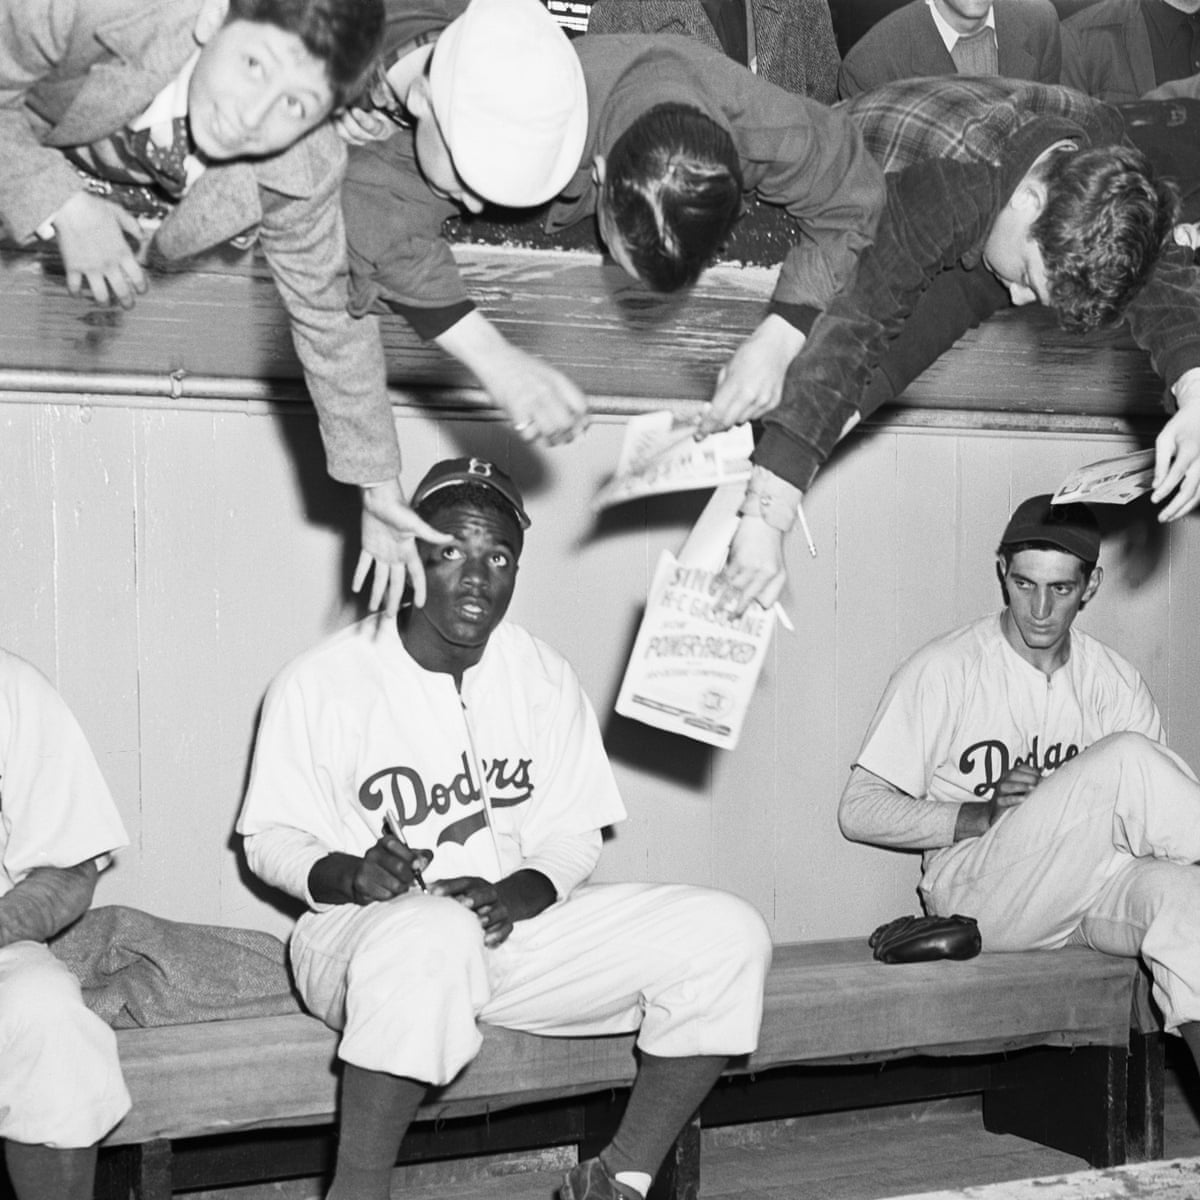 Colin Kaepernick S Dignified Protest Echoes The Spirit Of Jackie Robinson Richard Williams Sport The Guardian